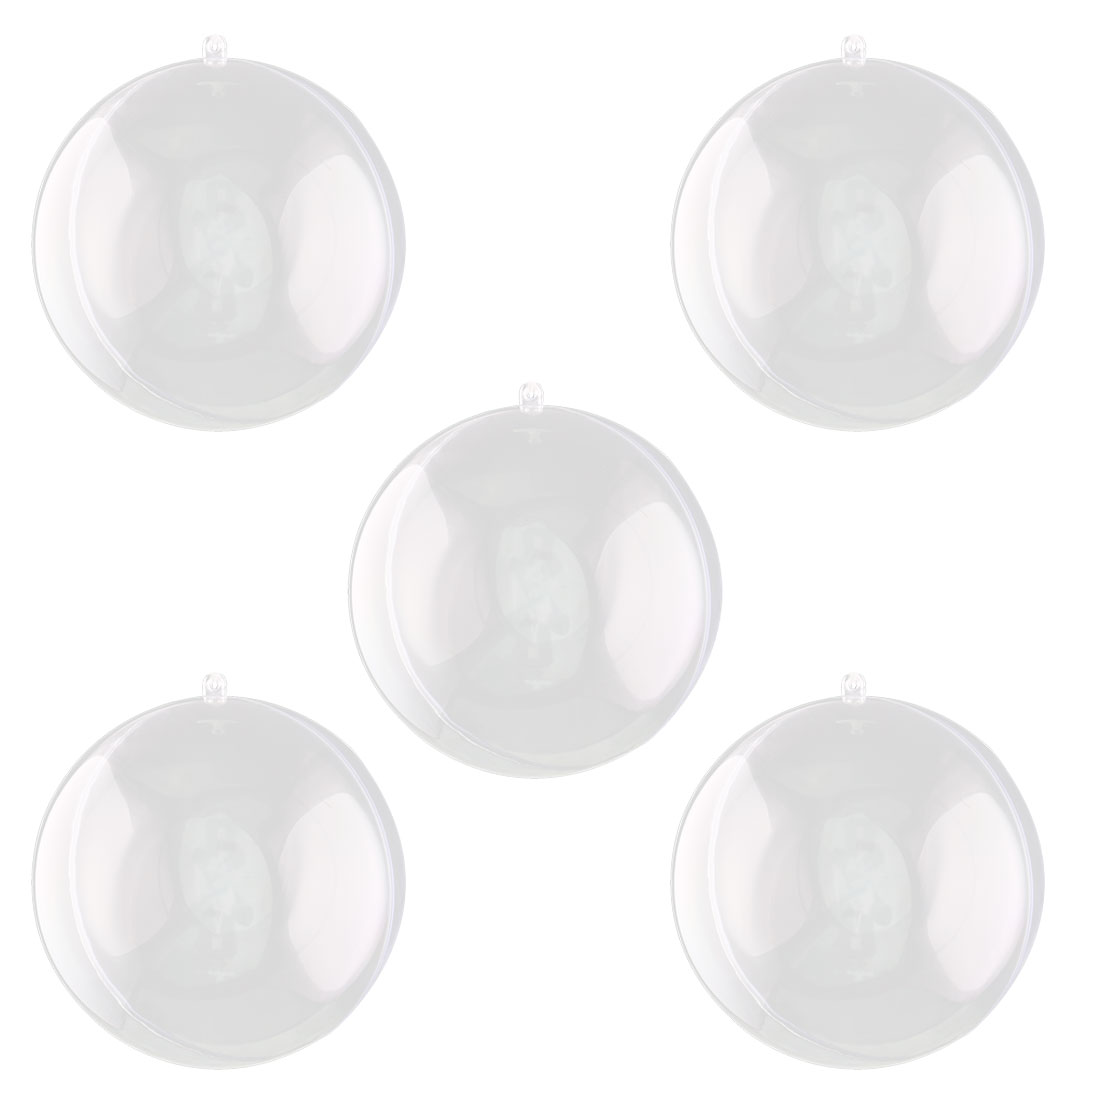 Home Garden Plastic Round Shaped Dangle Christmas Easter Ornament Bauble Ball Clear 5pcs